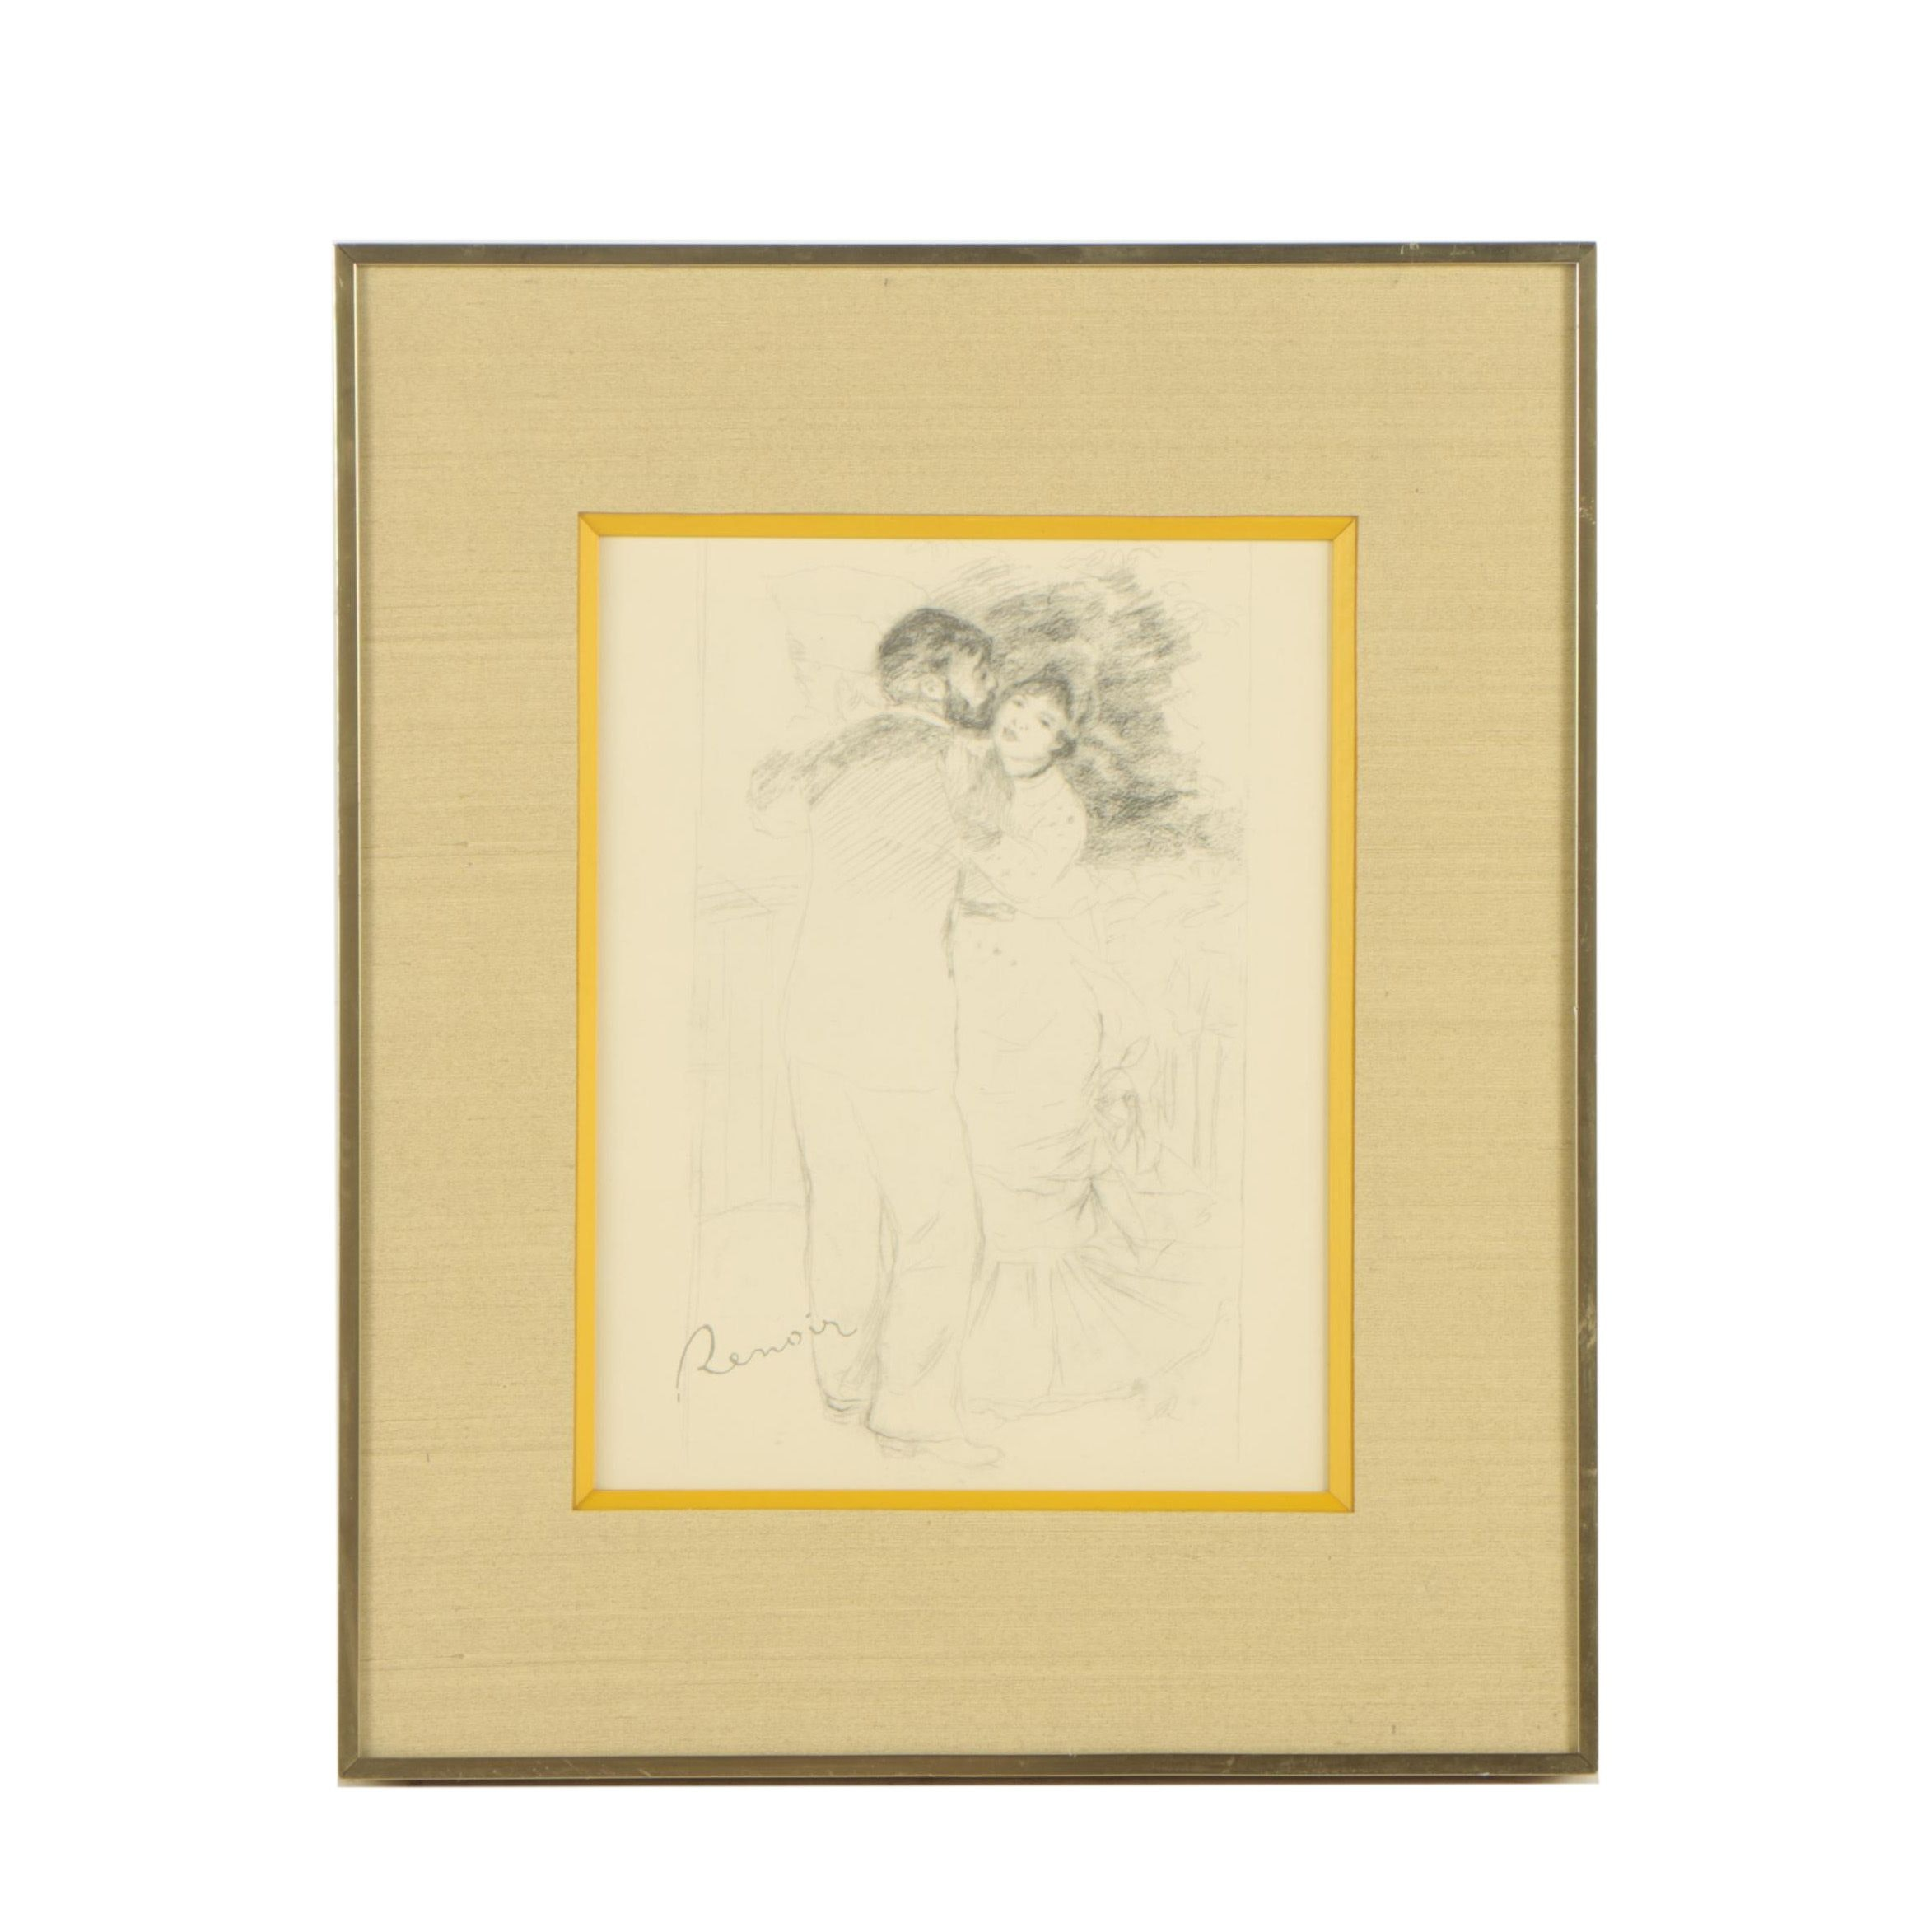 "Reproduction Print After Pierre-Auguste Renoir ""Study for Dance in the Country"""